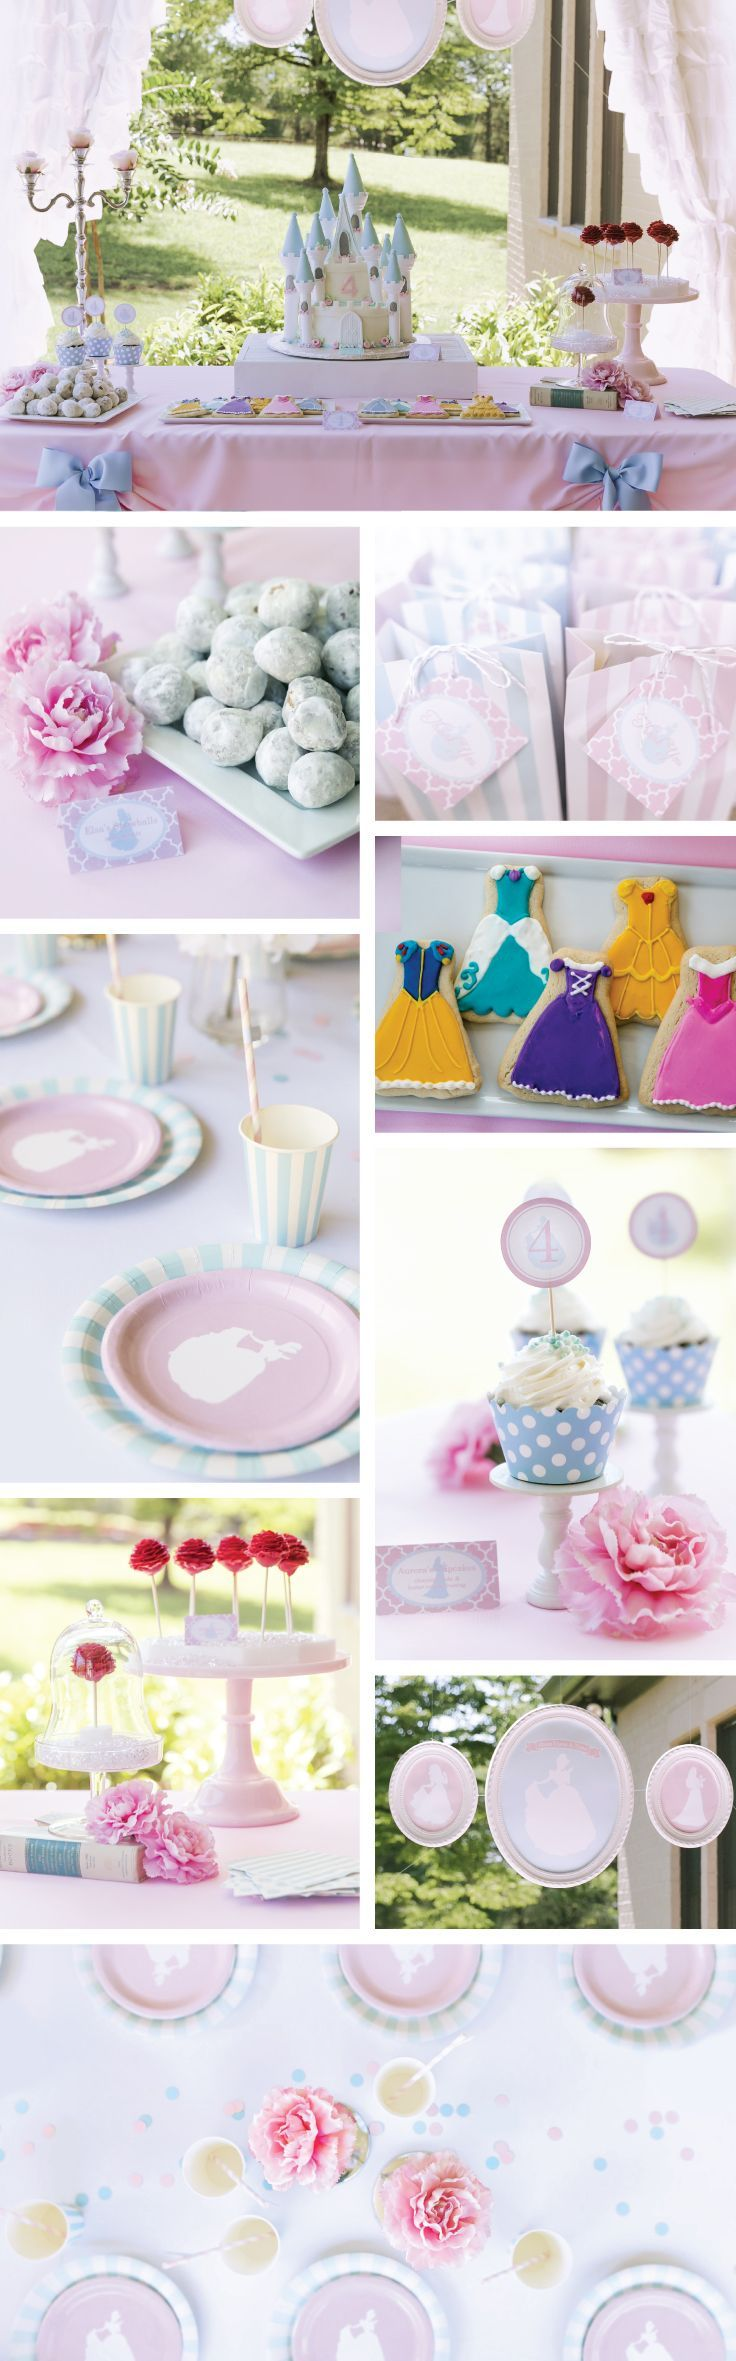 Princess Party Kit | Princess Party Decor | Cinderella Party | Pink and Blue Royal Celebration | See the entire Princess Hostess Kit at www.UndercoverHostess.com!: